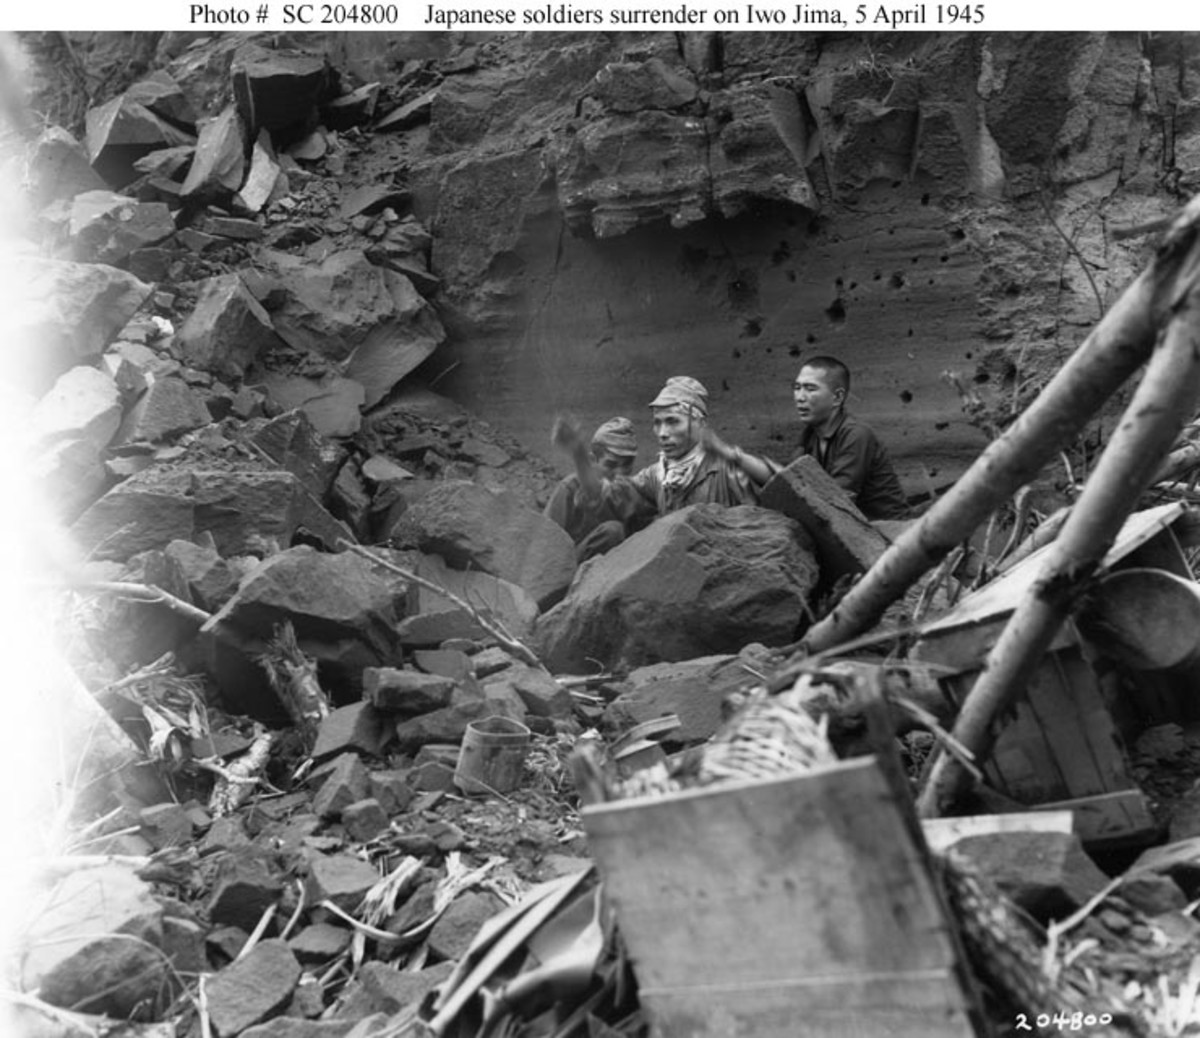 The Battle of Iwo Jima ends for three more Japanese soldiers, on April 5, 1945, weeks after the island was declared secured.